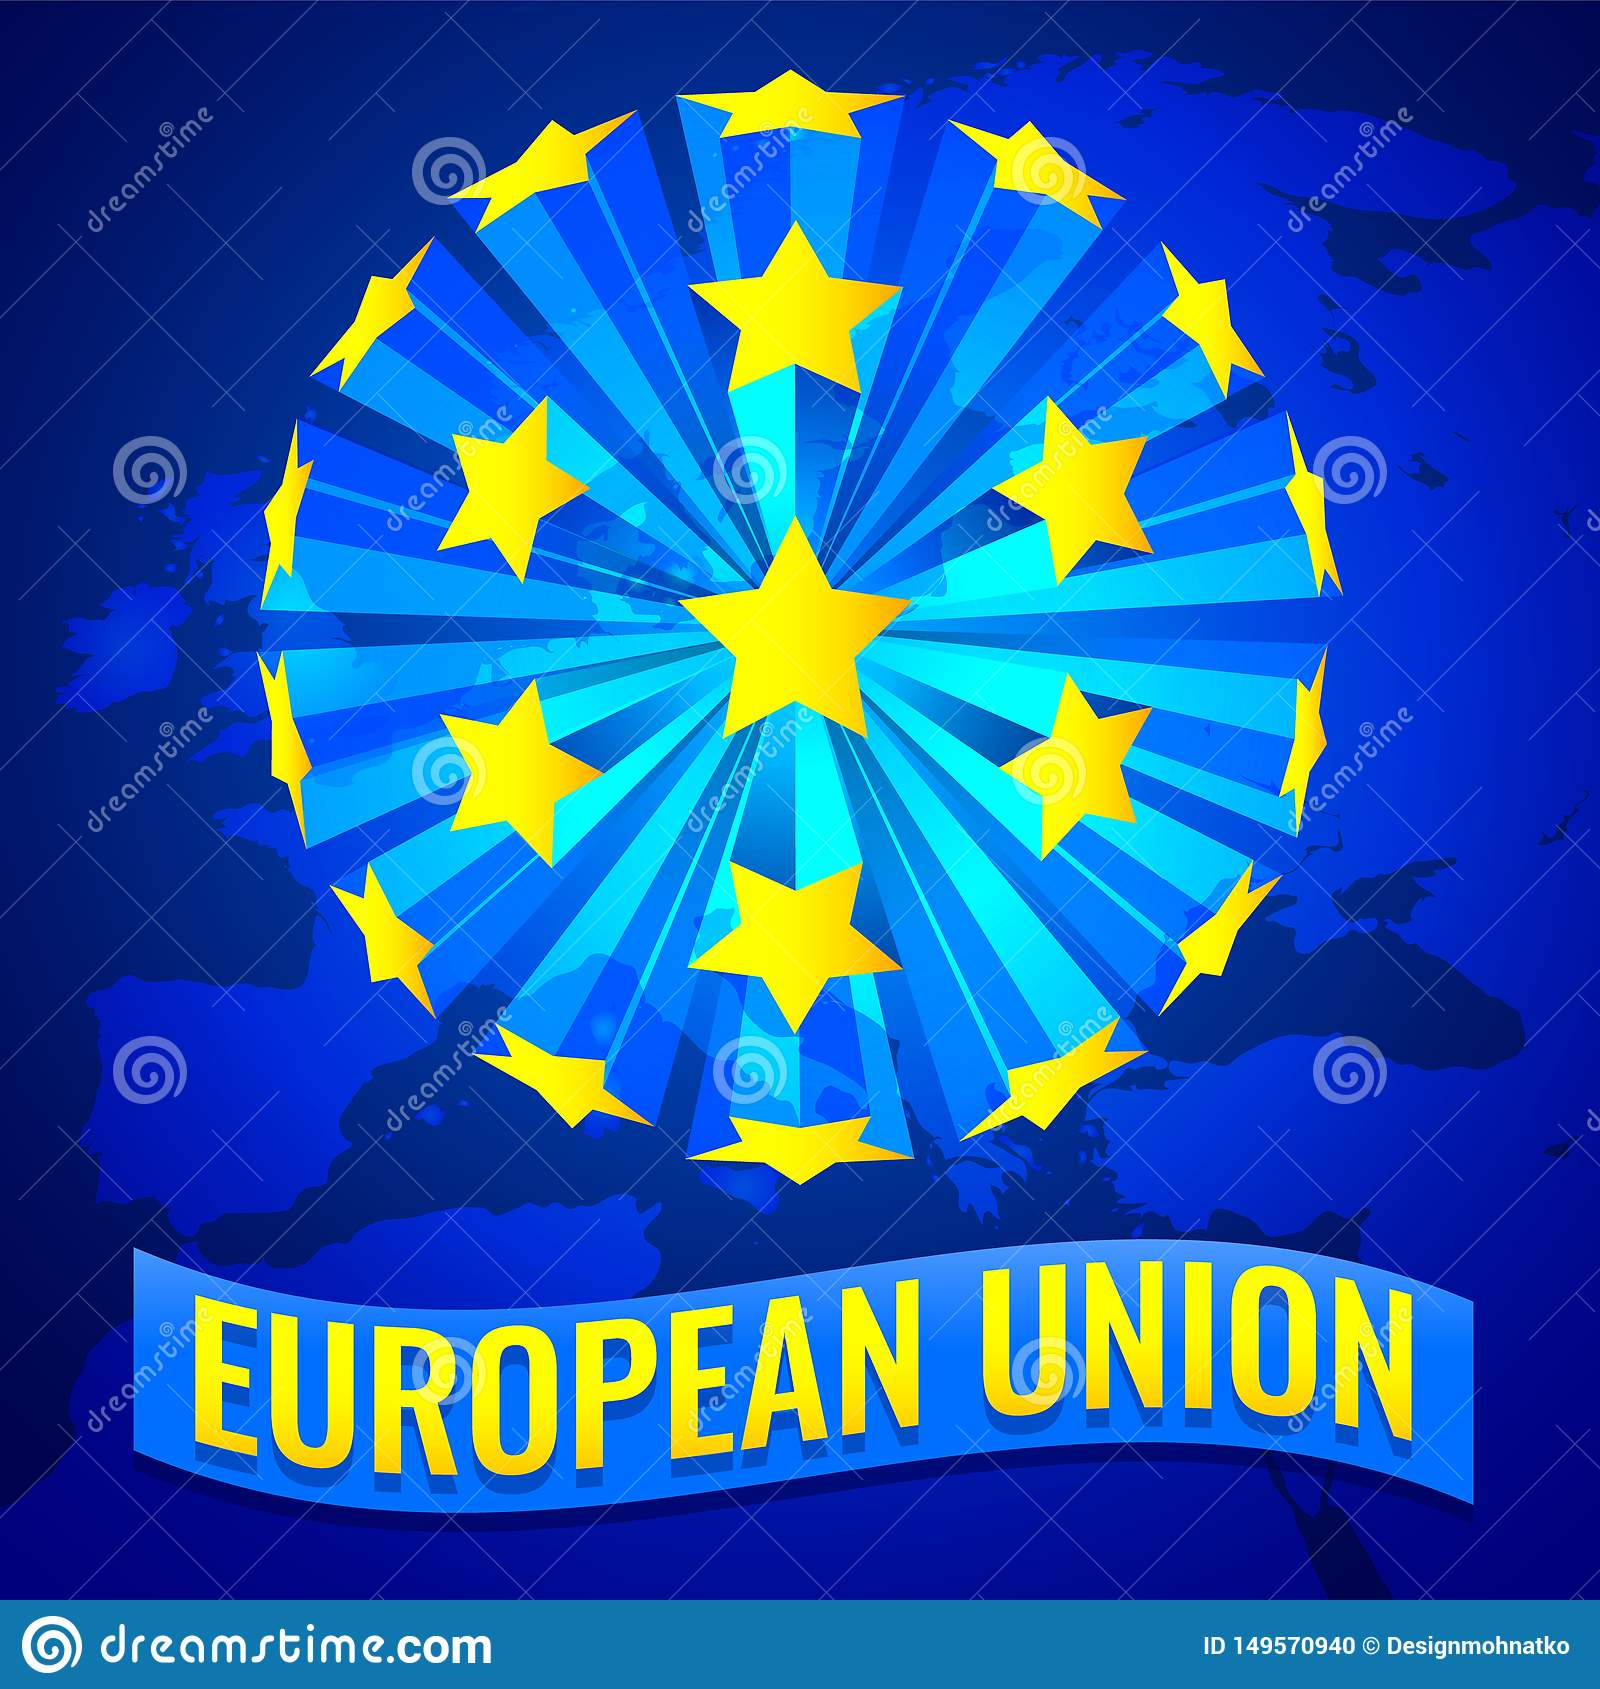 European Union Banner Vector illustration with Europe map